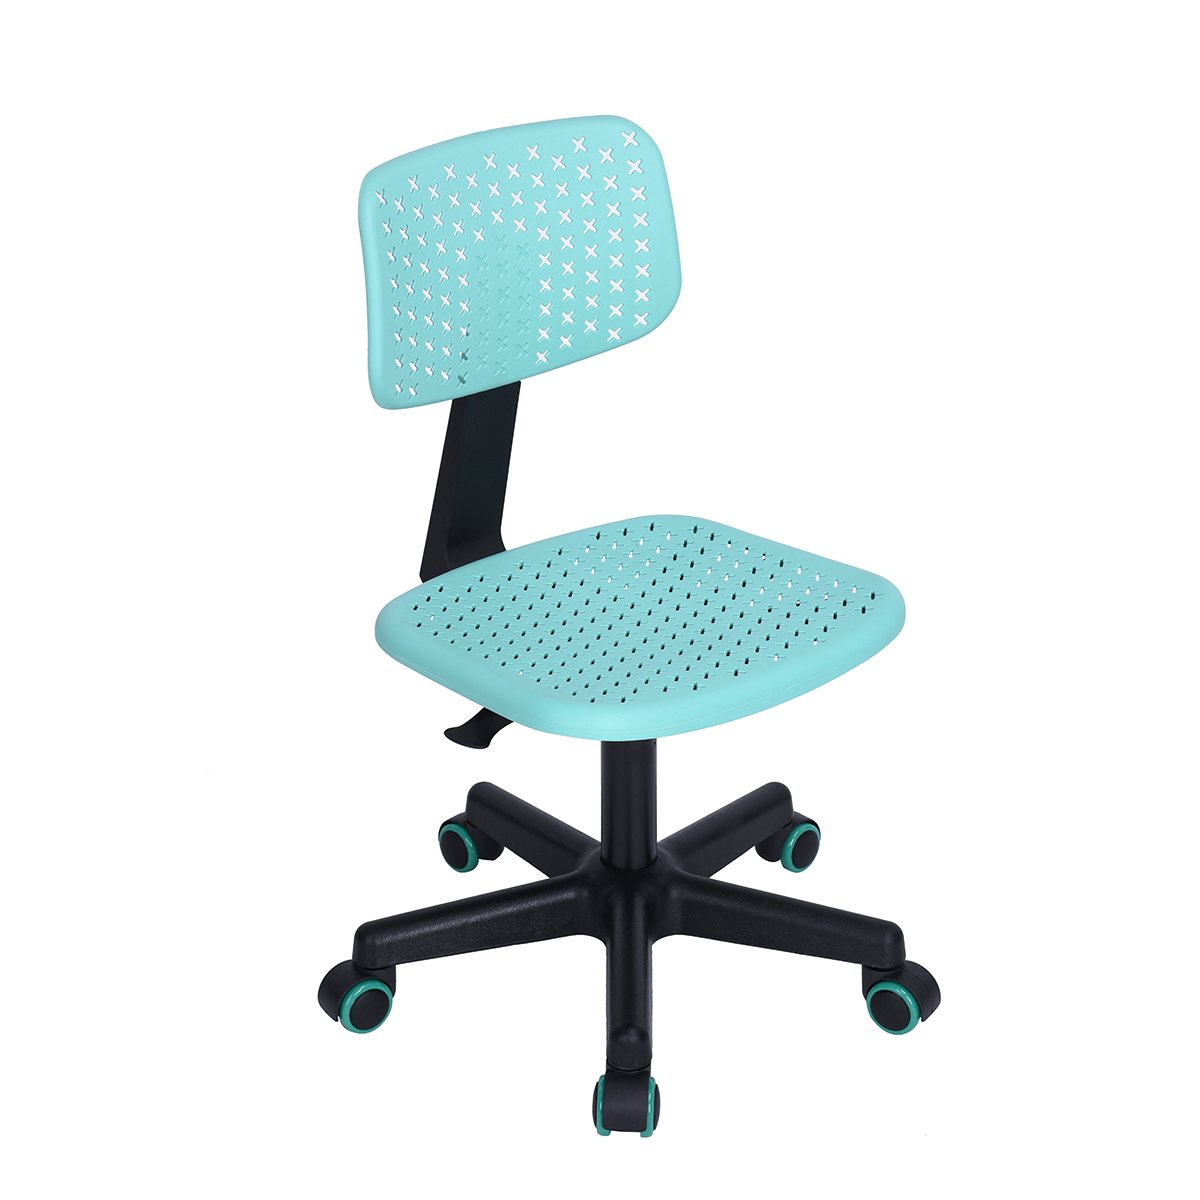 HouseinBox Children Kids Boys Girls Swivel Desk Chair 360 Rolling, Low-Back Armless Height Adjustable Home Kindergarten,Turquoise,WDH:15.9''X14.6''X34.3''